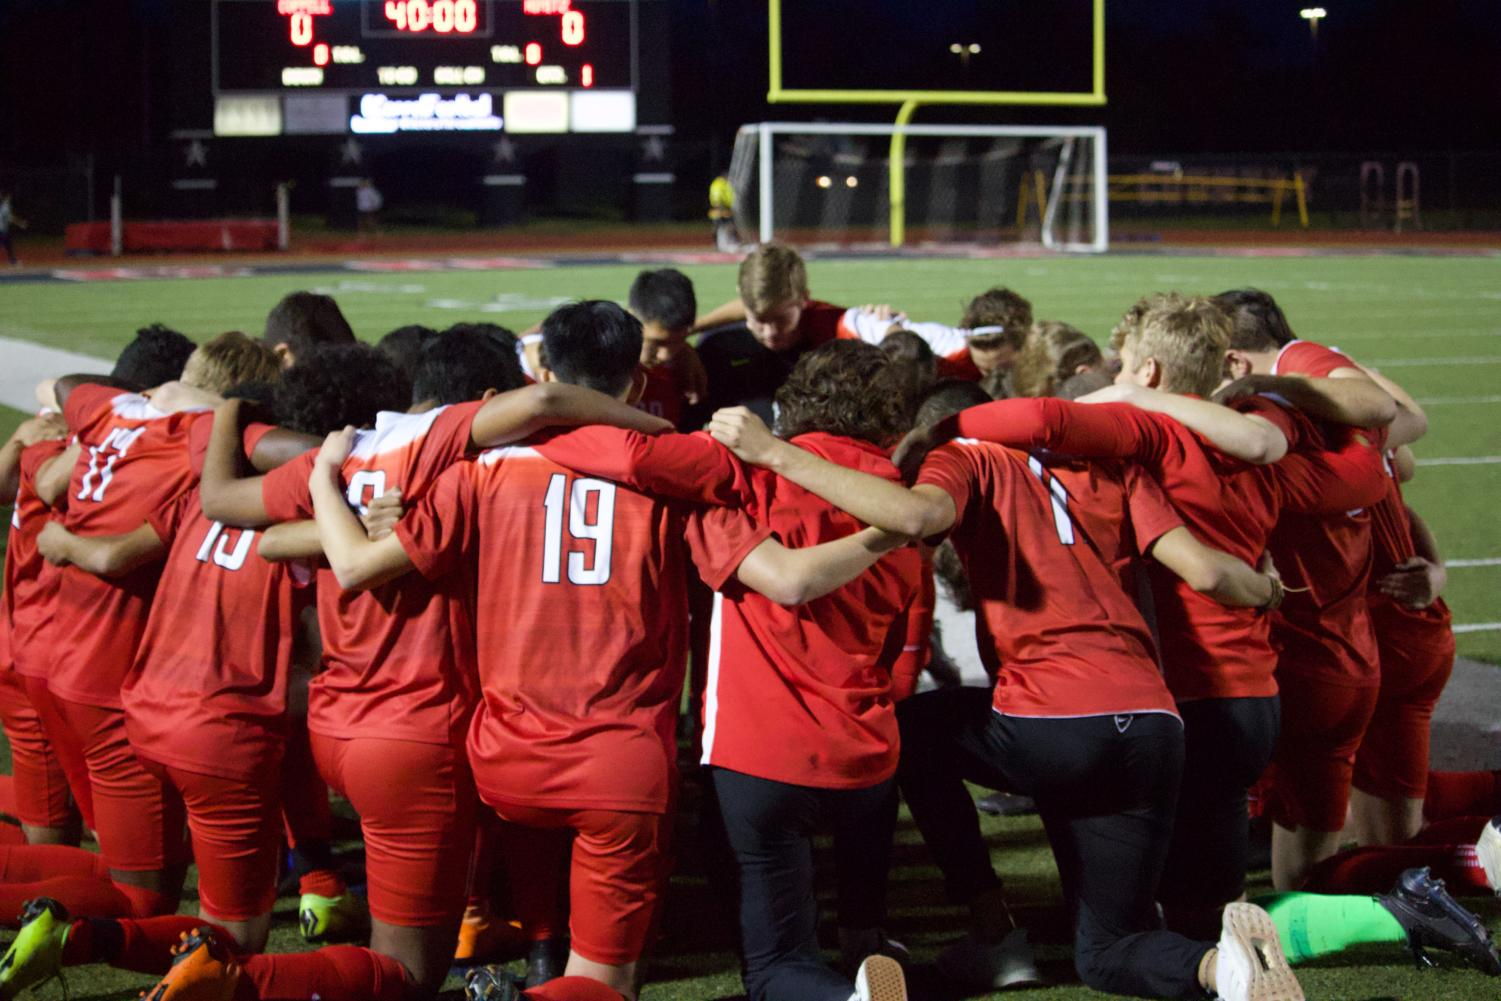 The Coppell boys soccer team huddles before the Irving Nimitz on March 22 to exchange words of encouragement at Buddy Echols Field. The Cowboys plays its second Class 6A Region I bi-district playoffs match against Grand Prairie at Mustang-Panther Stadium on Tuesday at 8 p.m.